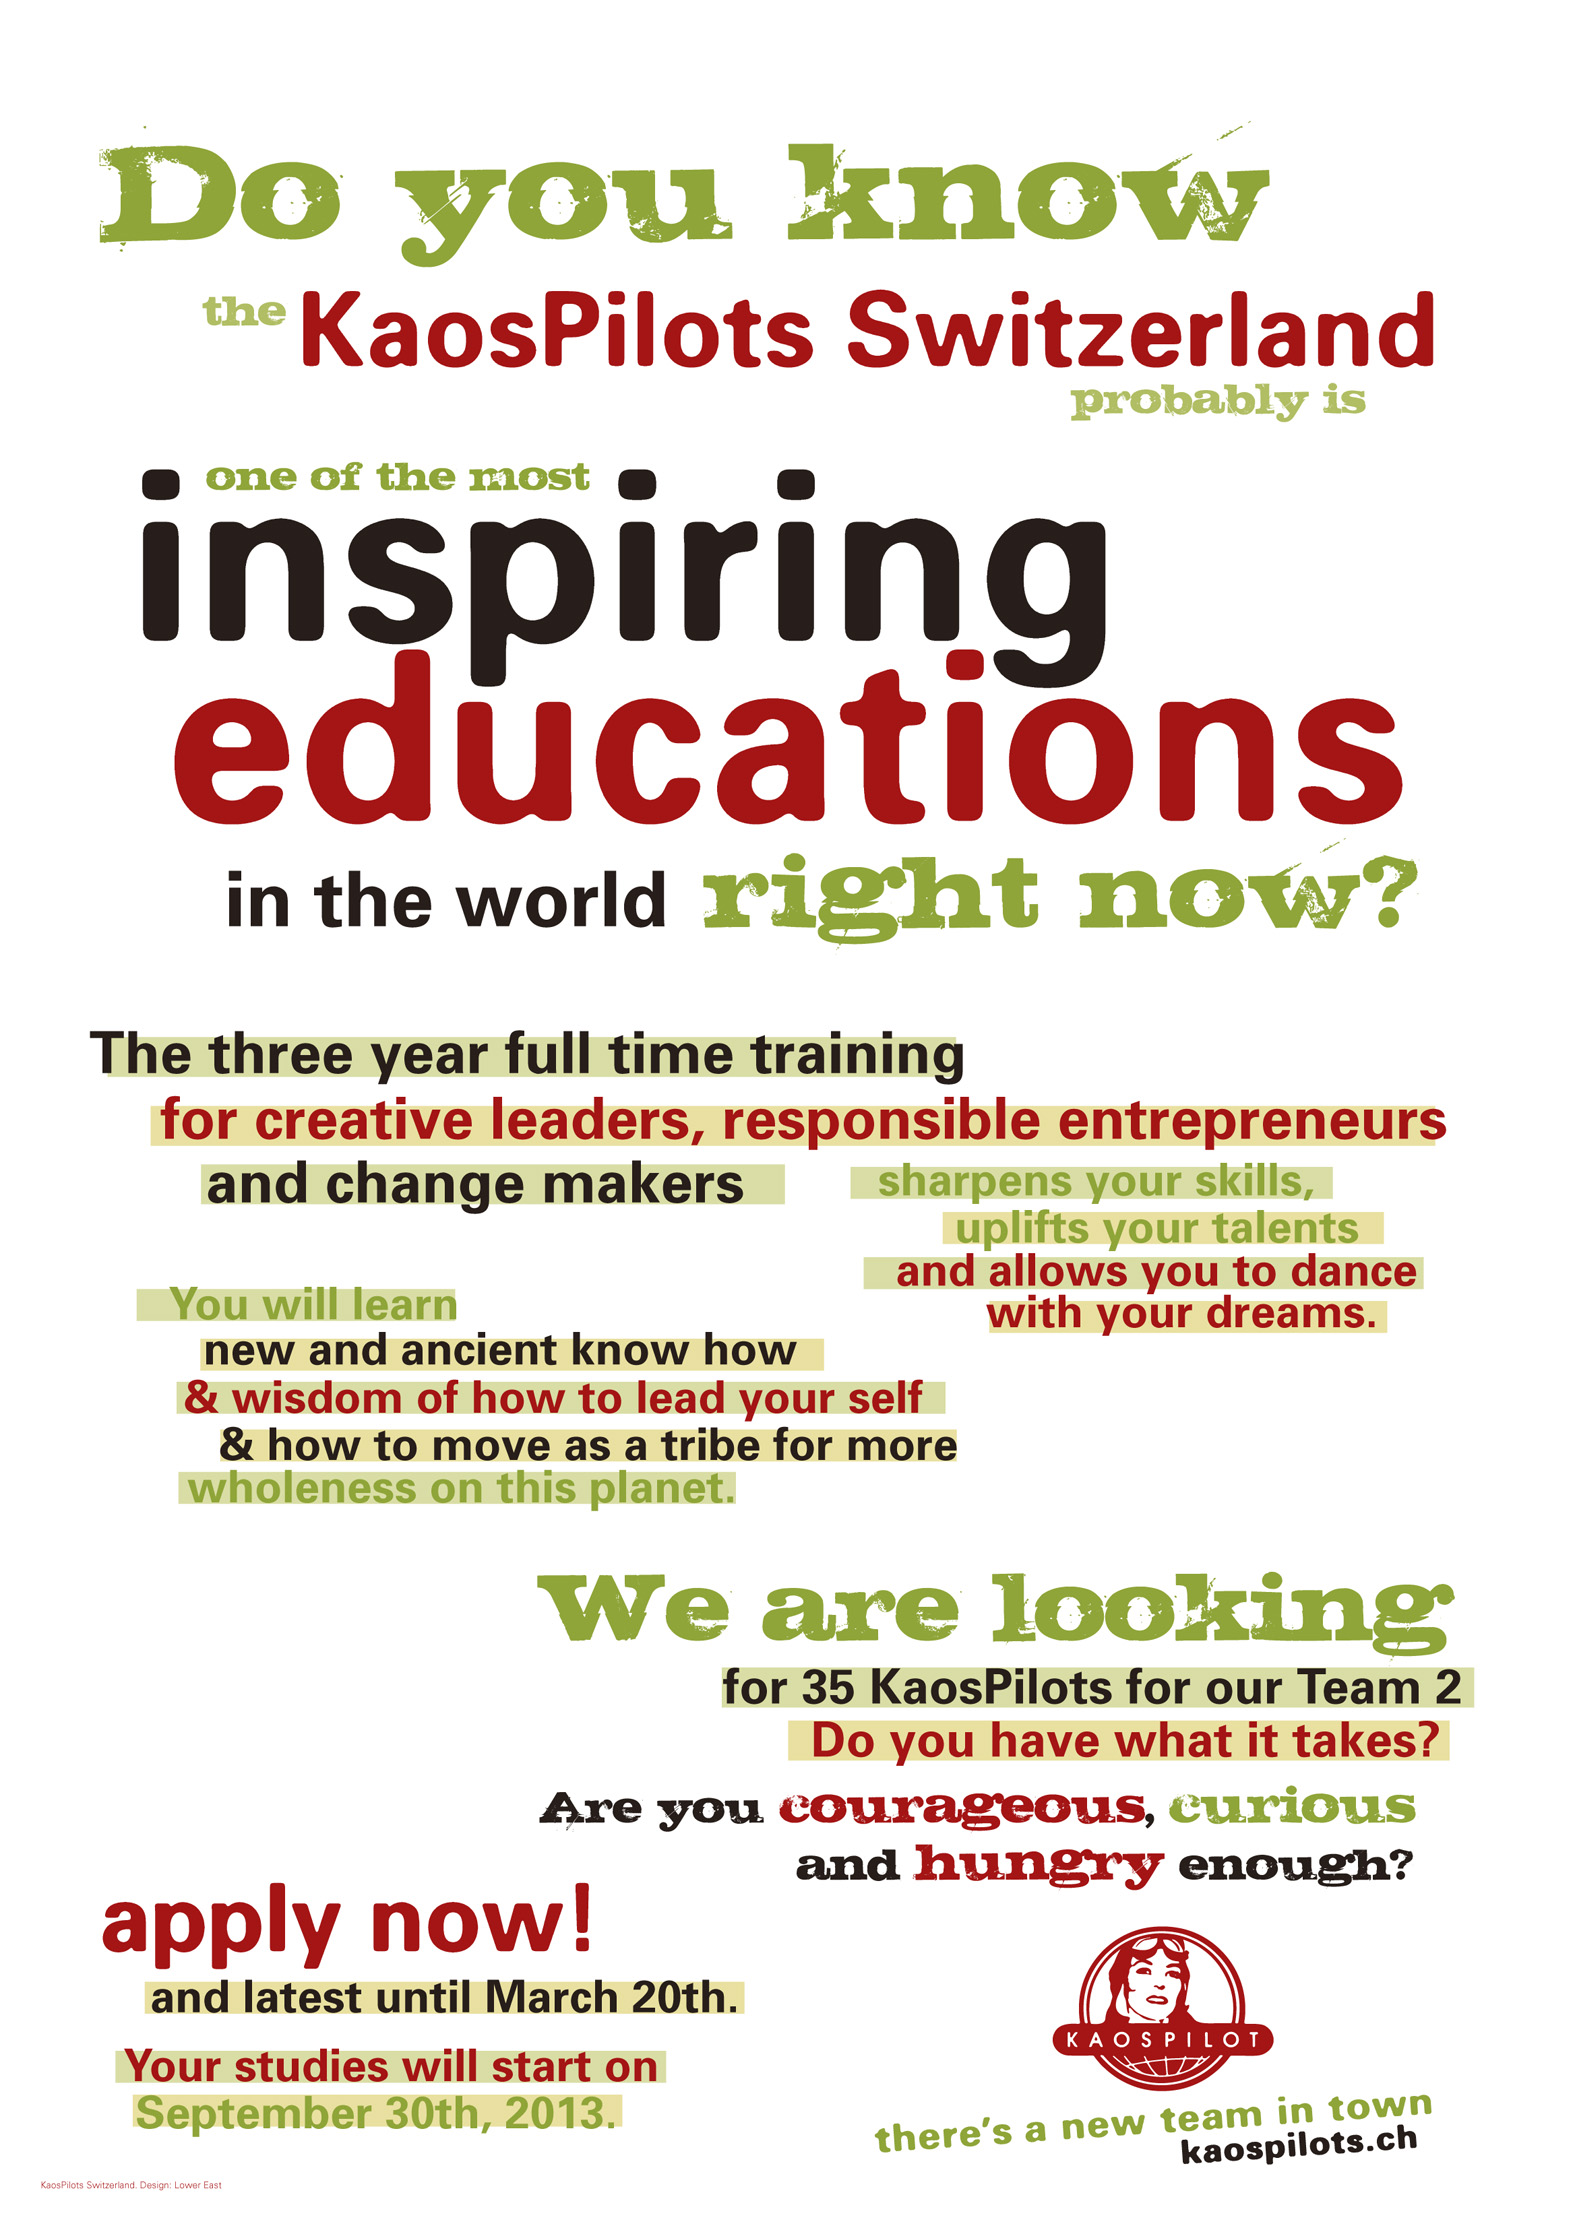 KaosPilot Switzerland poster designed by Lower East